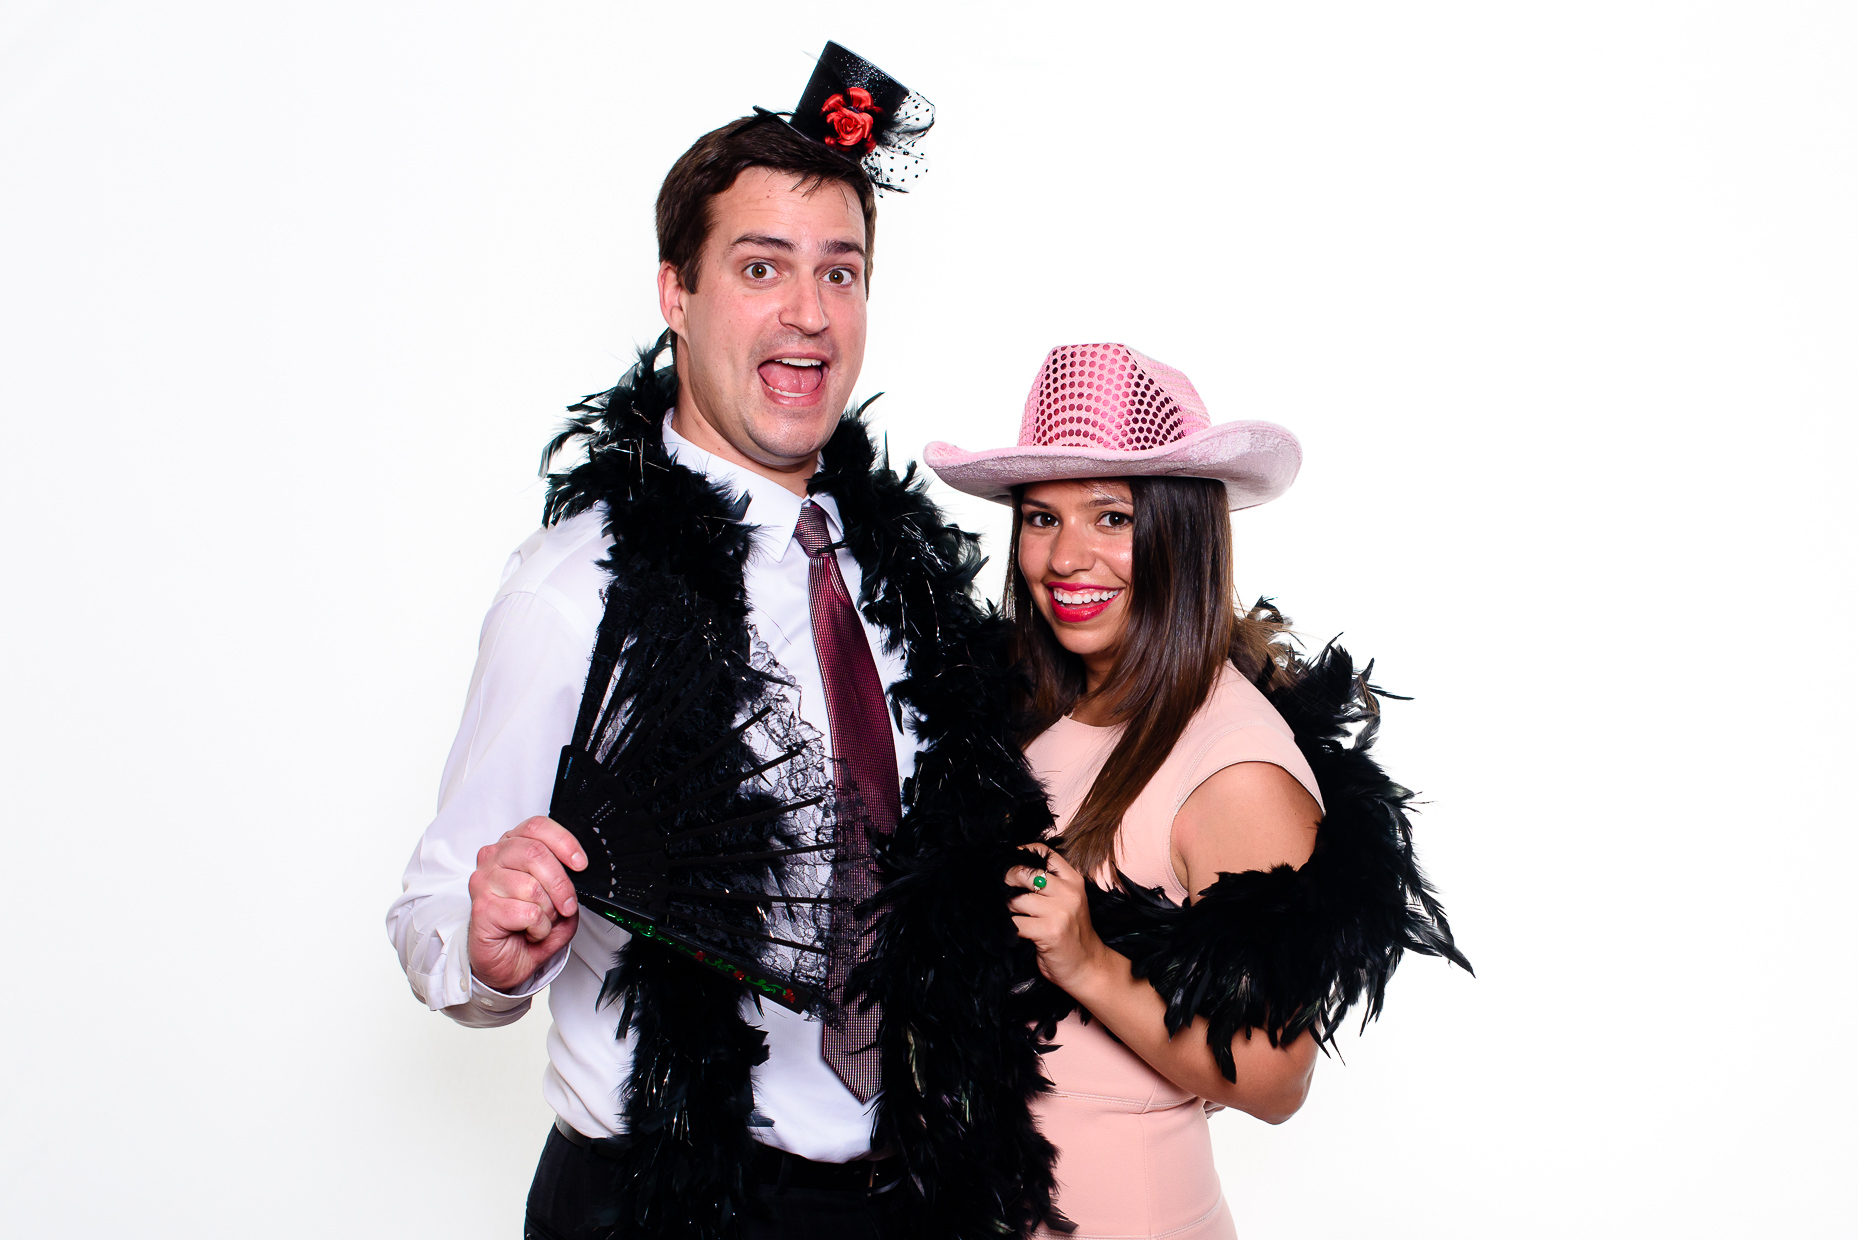 austin-teas-wedding-photographer-photo-booth-hats